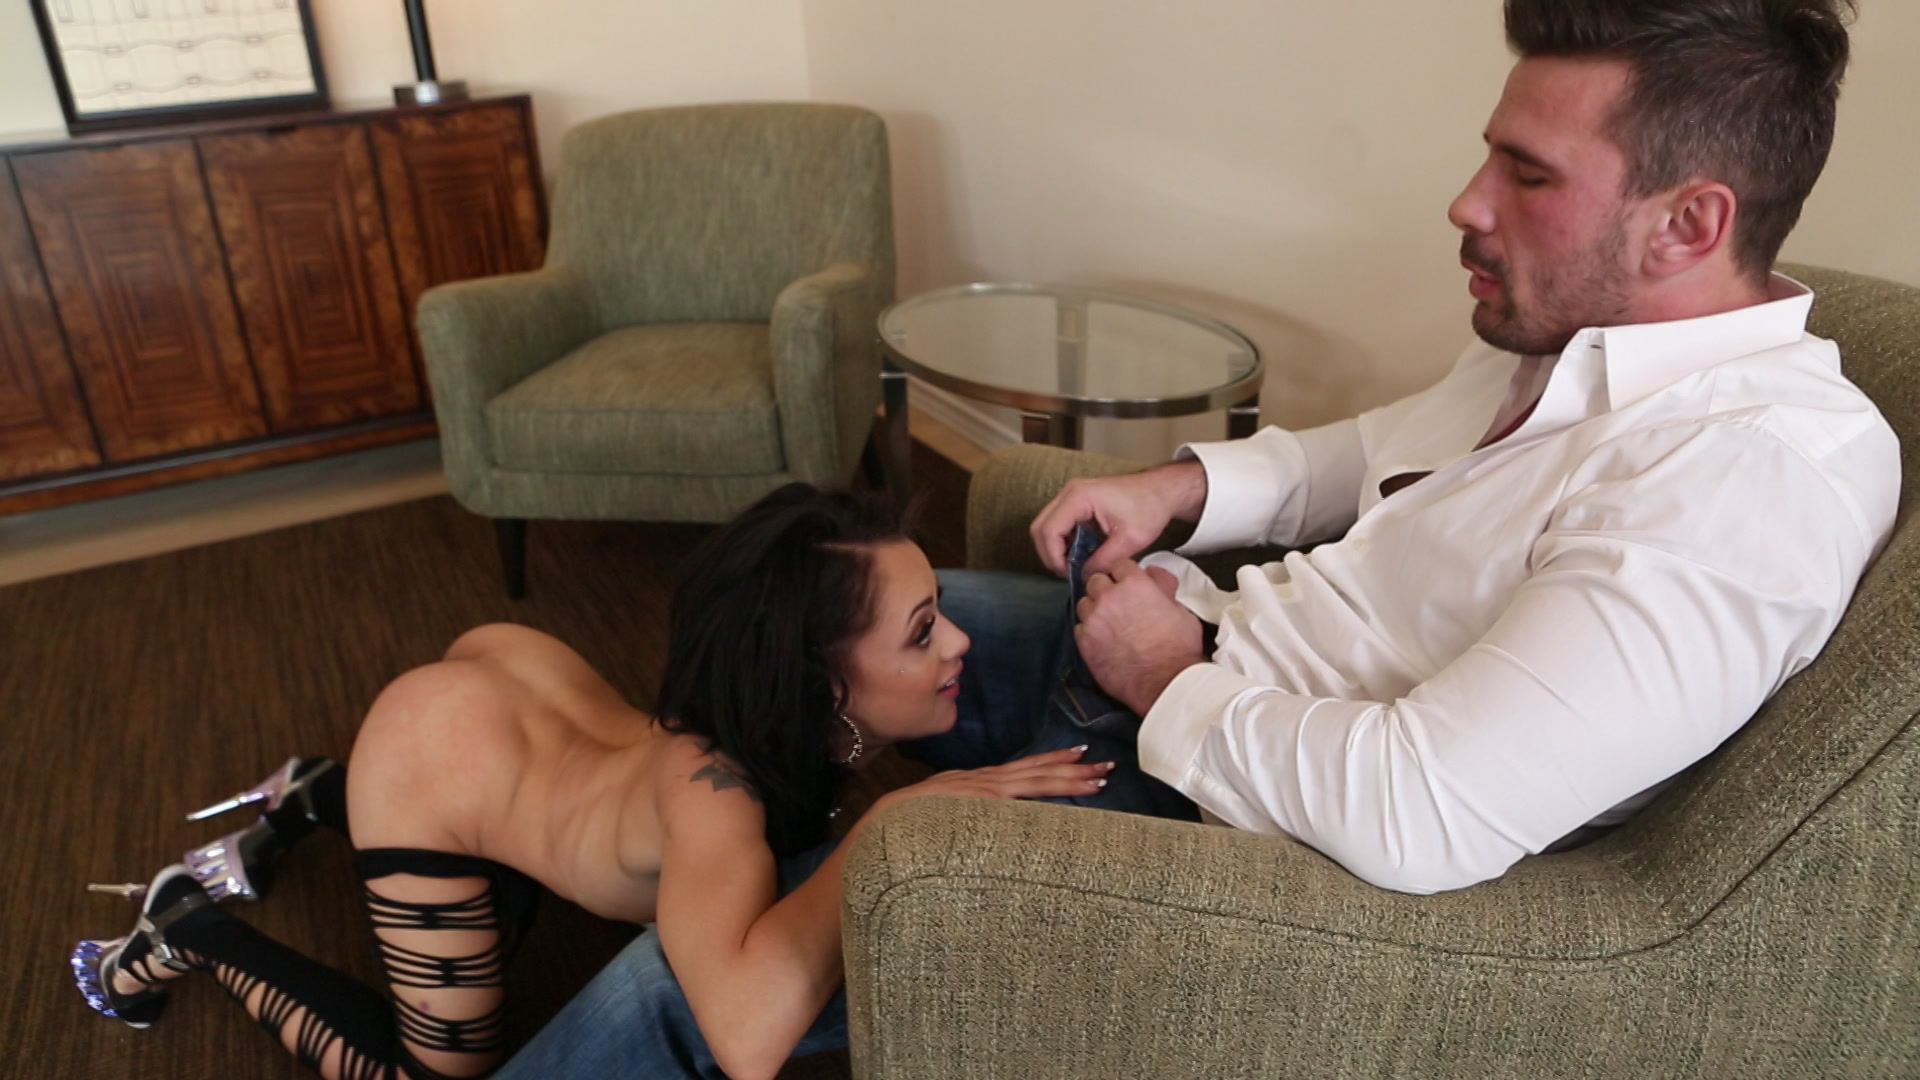 Scene with Holly Hendrix - image 9 out of 20